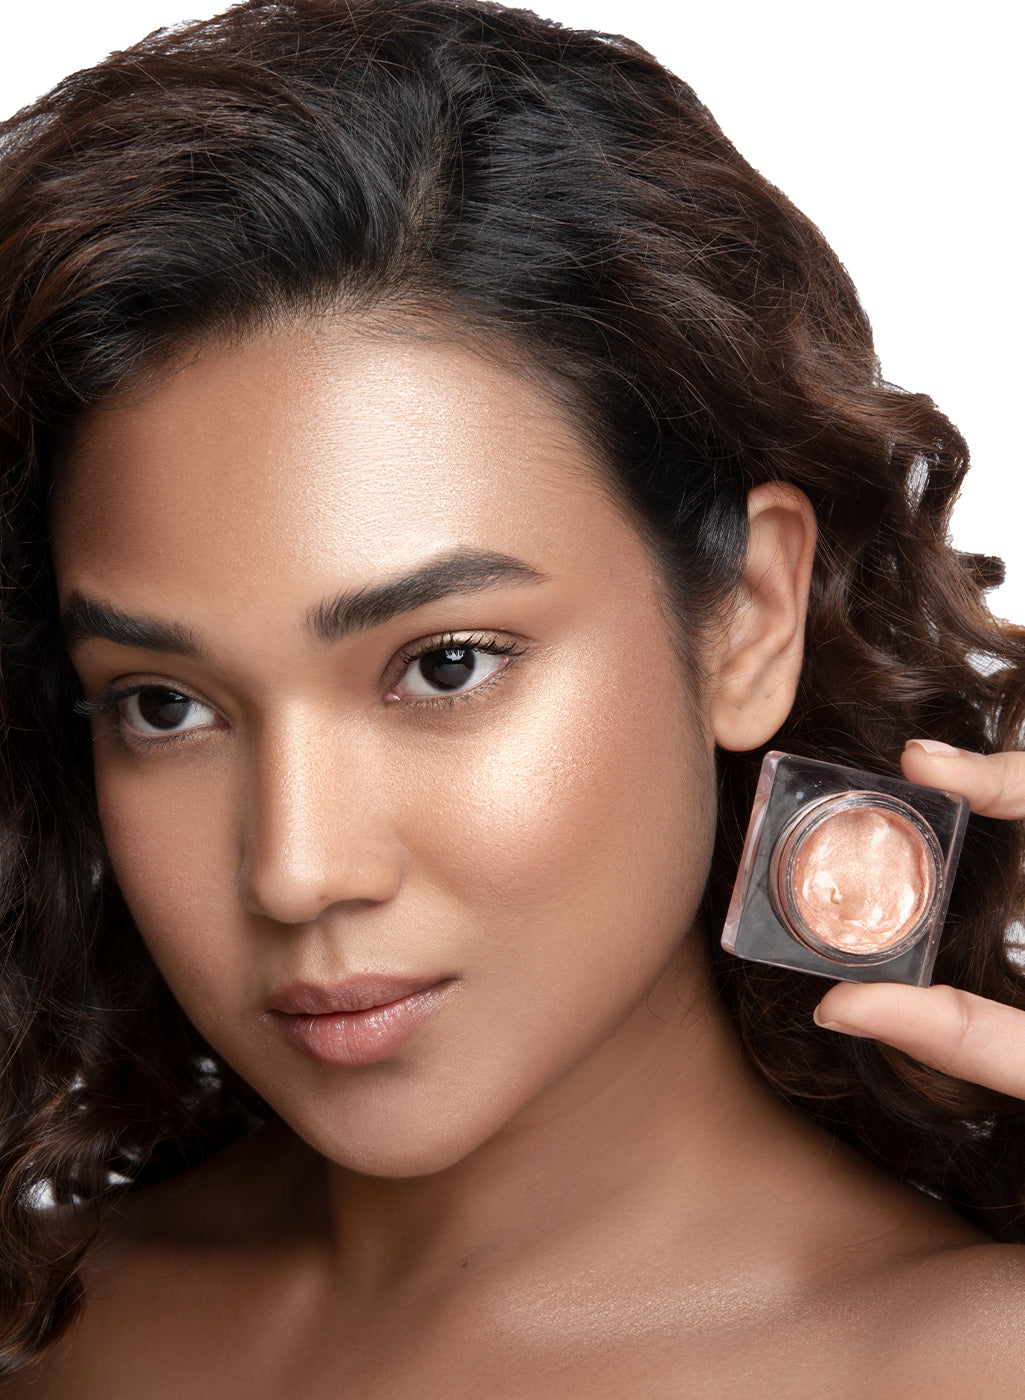 SUGAR Cosmetics Glow And Behold Jelly Highlighter - 02 Peach Pioneer (Peach Pink Gold)